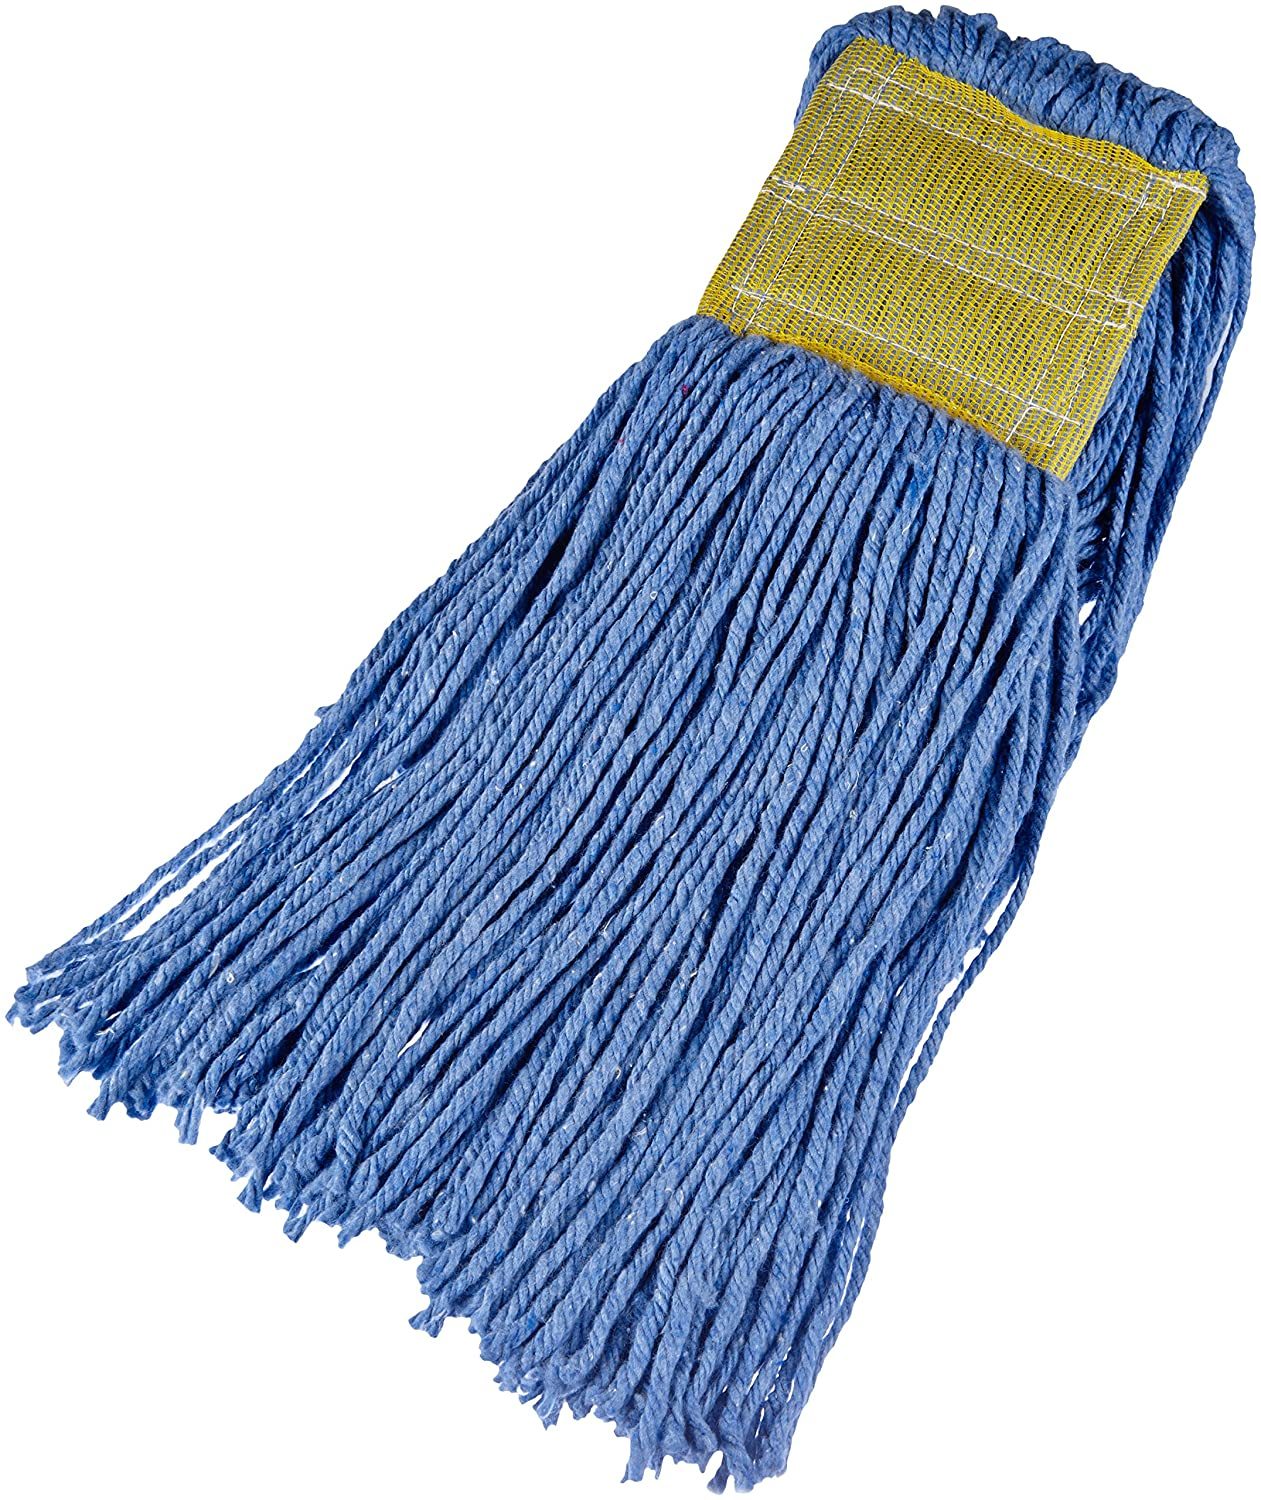 AmazonBasics Cut-End Cotton Commercial String Mop Head, 5 Inch Headband, Large, Blue, 6-Pack